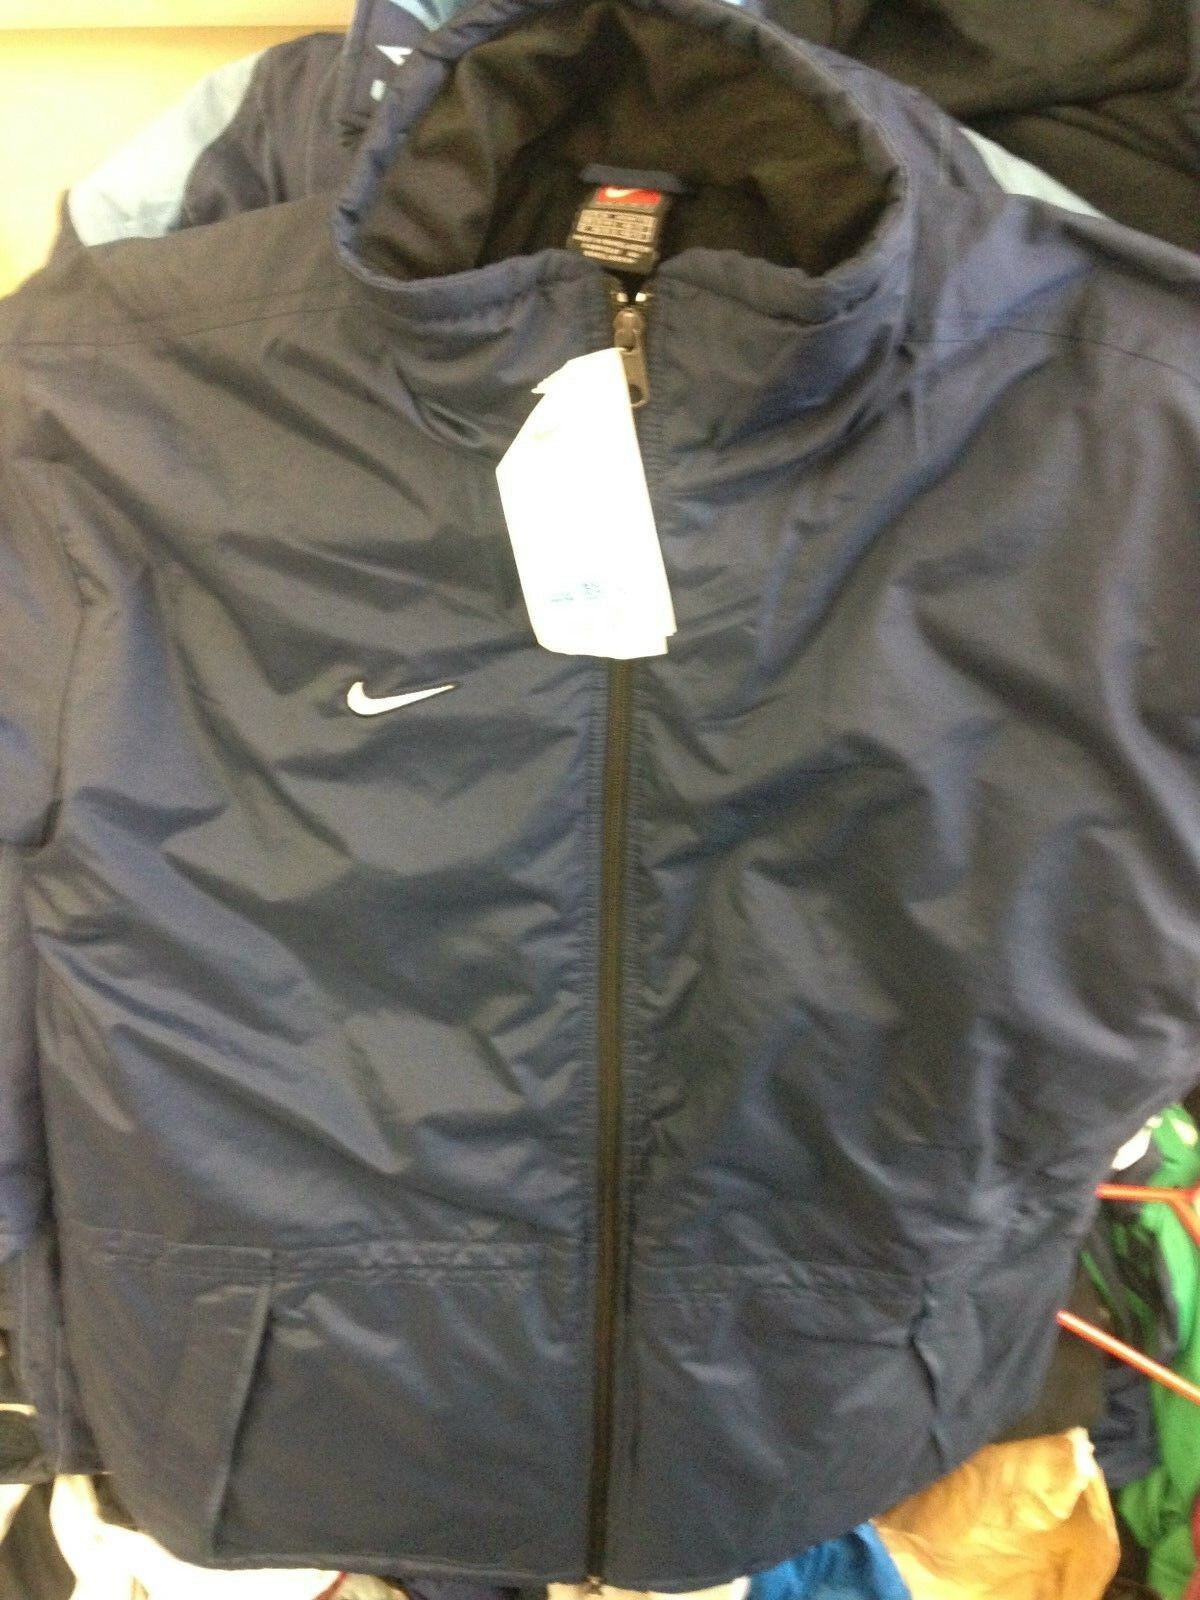 NIKE WINTER  COAT IN  NAVY IN MED 38 40 X L 42 44  inchSIZE  BNWLLONG LENGHT